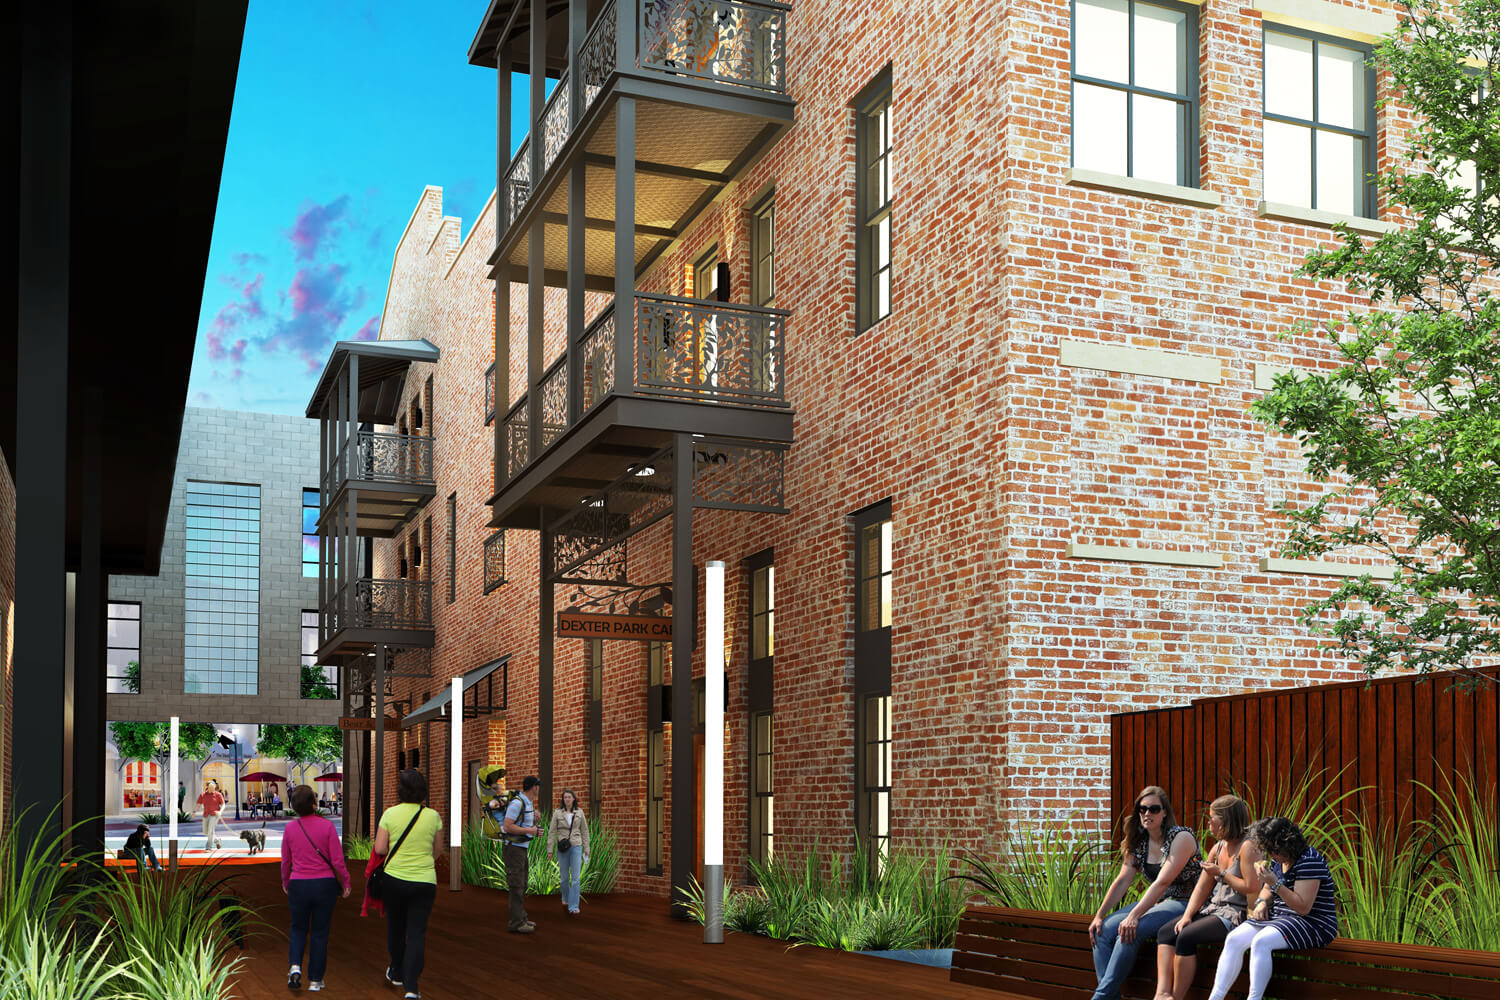 Ruth and Sons Designed by Foshee Architecture - Artist Depiction and Rendering of Exterior Alley Park